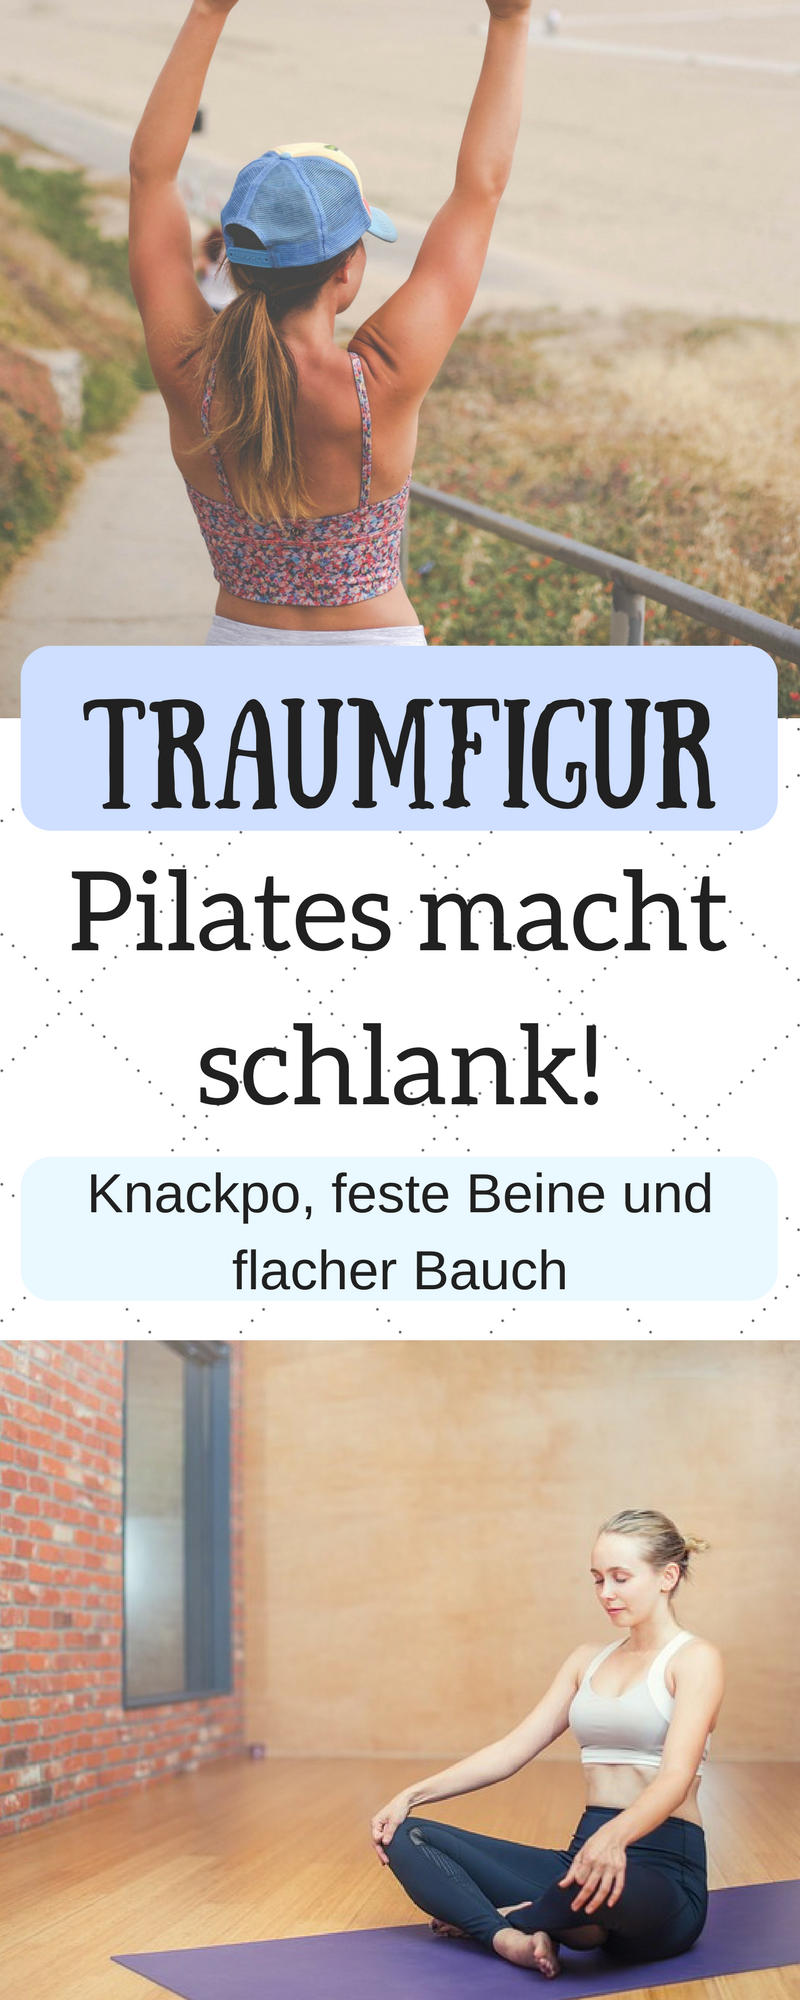 mit pilates zur traumfigur pilates bungen bauch pilates bungen fortgeschritten pilates. Black Bedroom Furniture Sets. Home Design Ideas